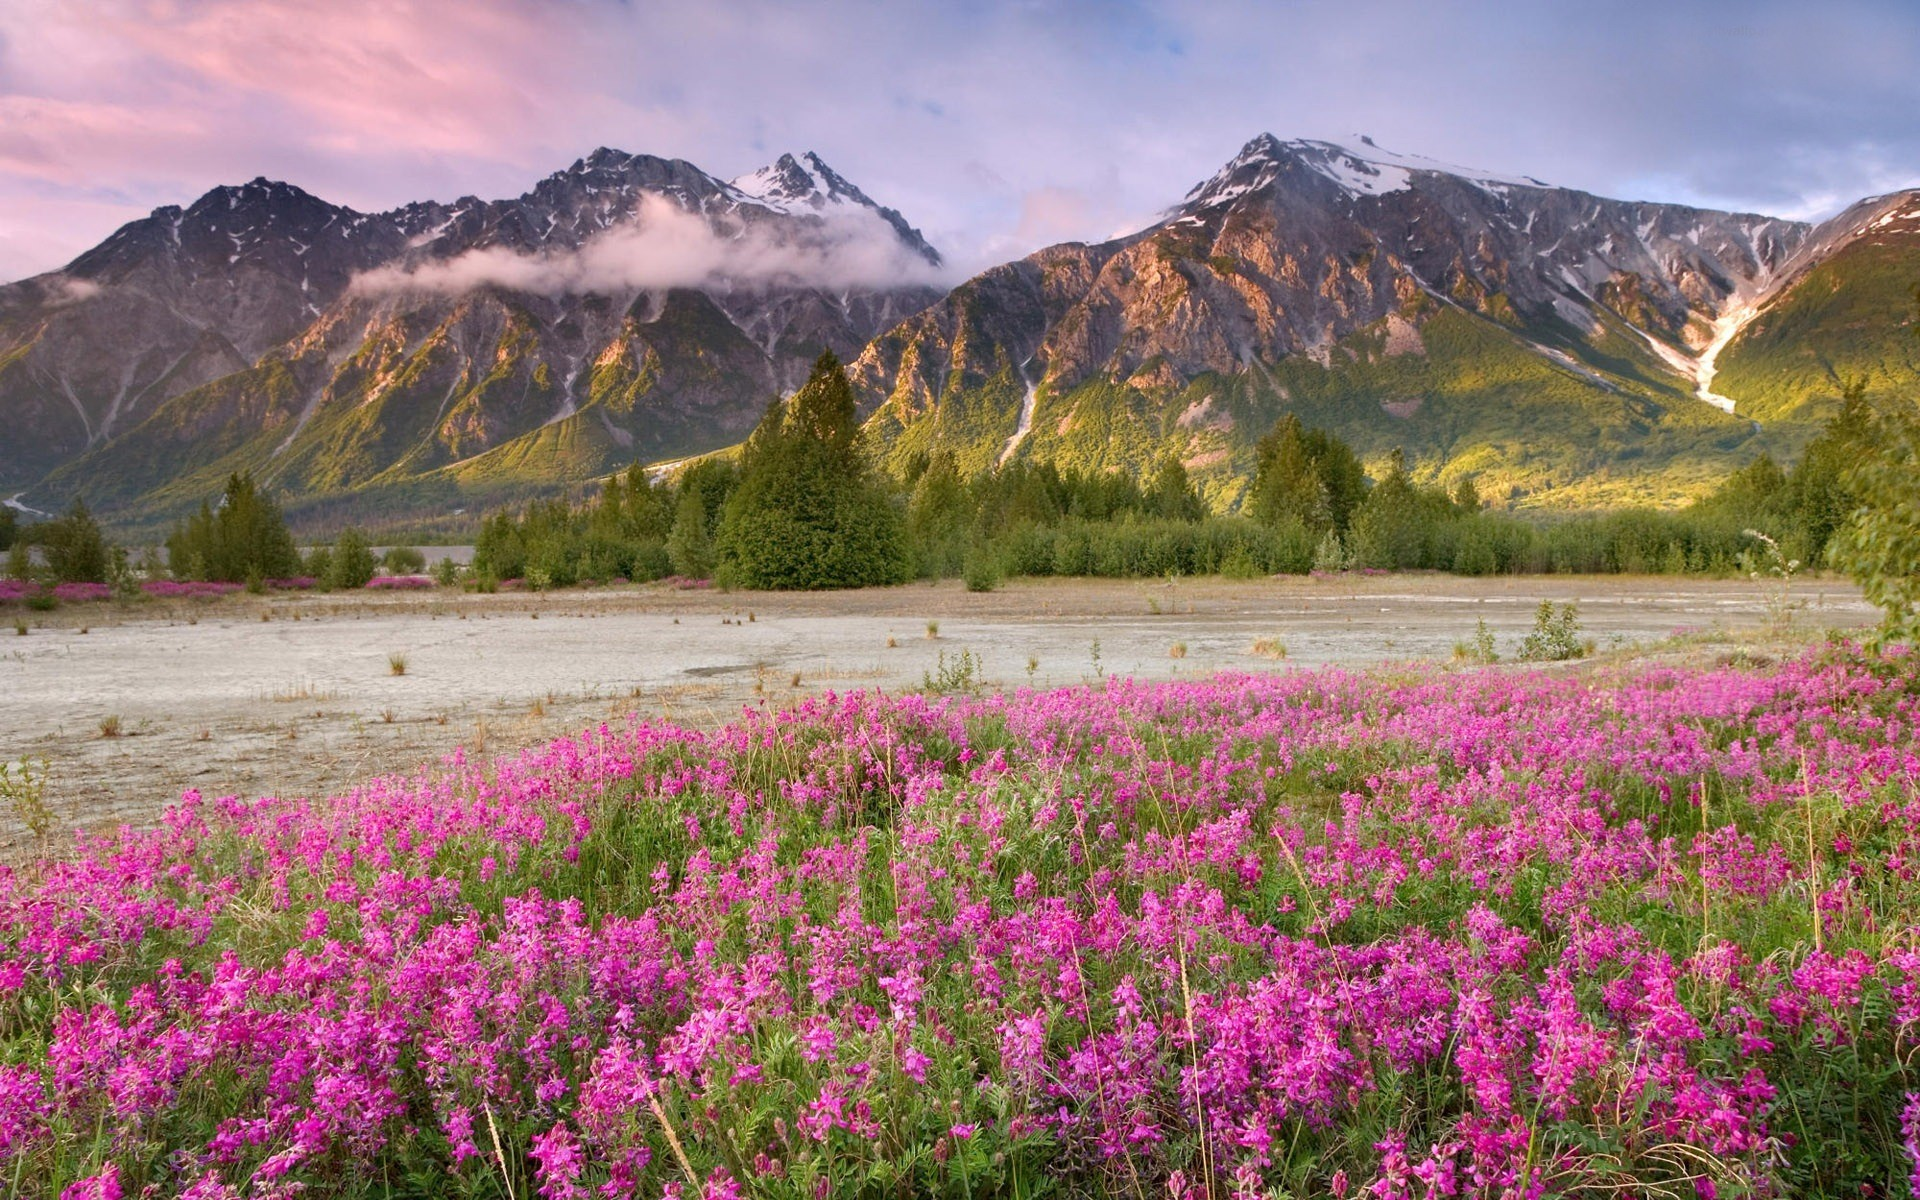 1920x1200 mountain images free | Spring Mountains desktop wallpaper